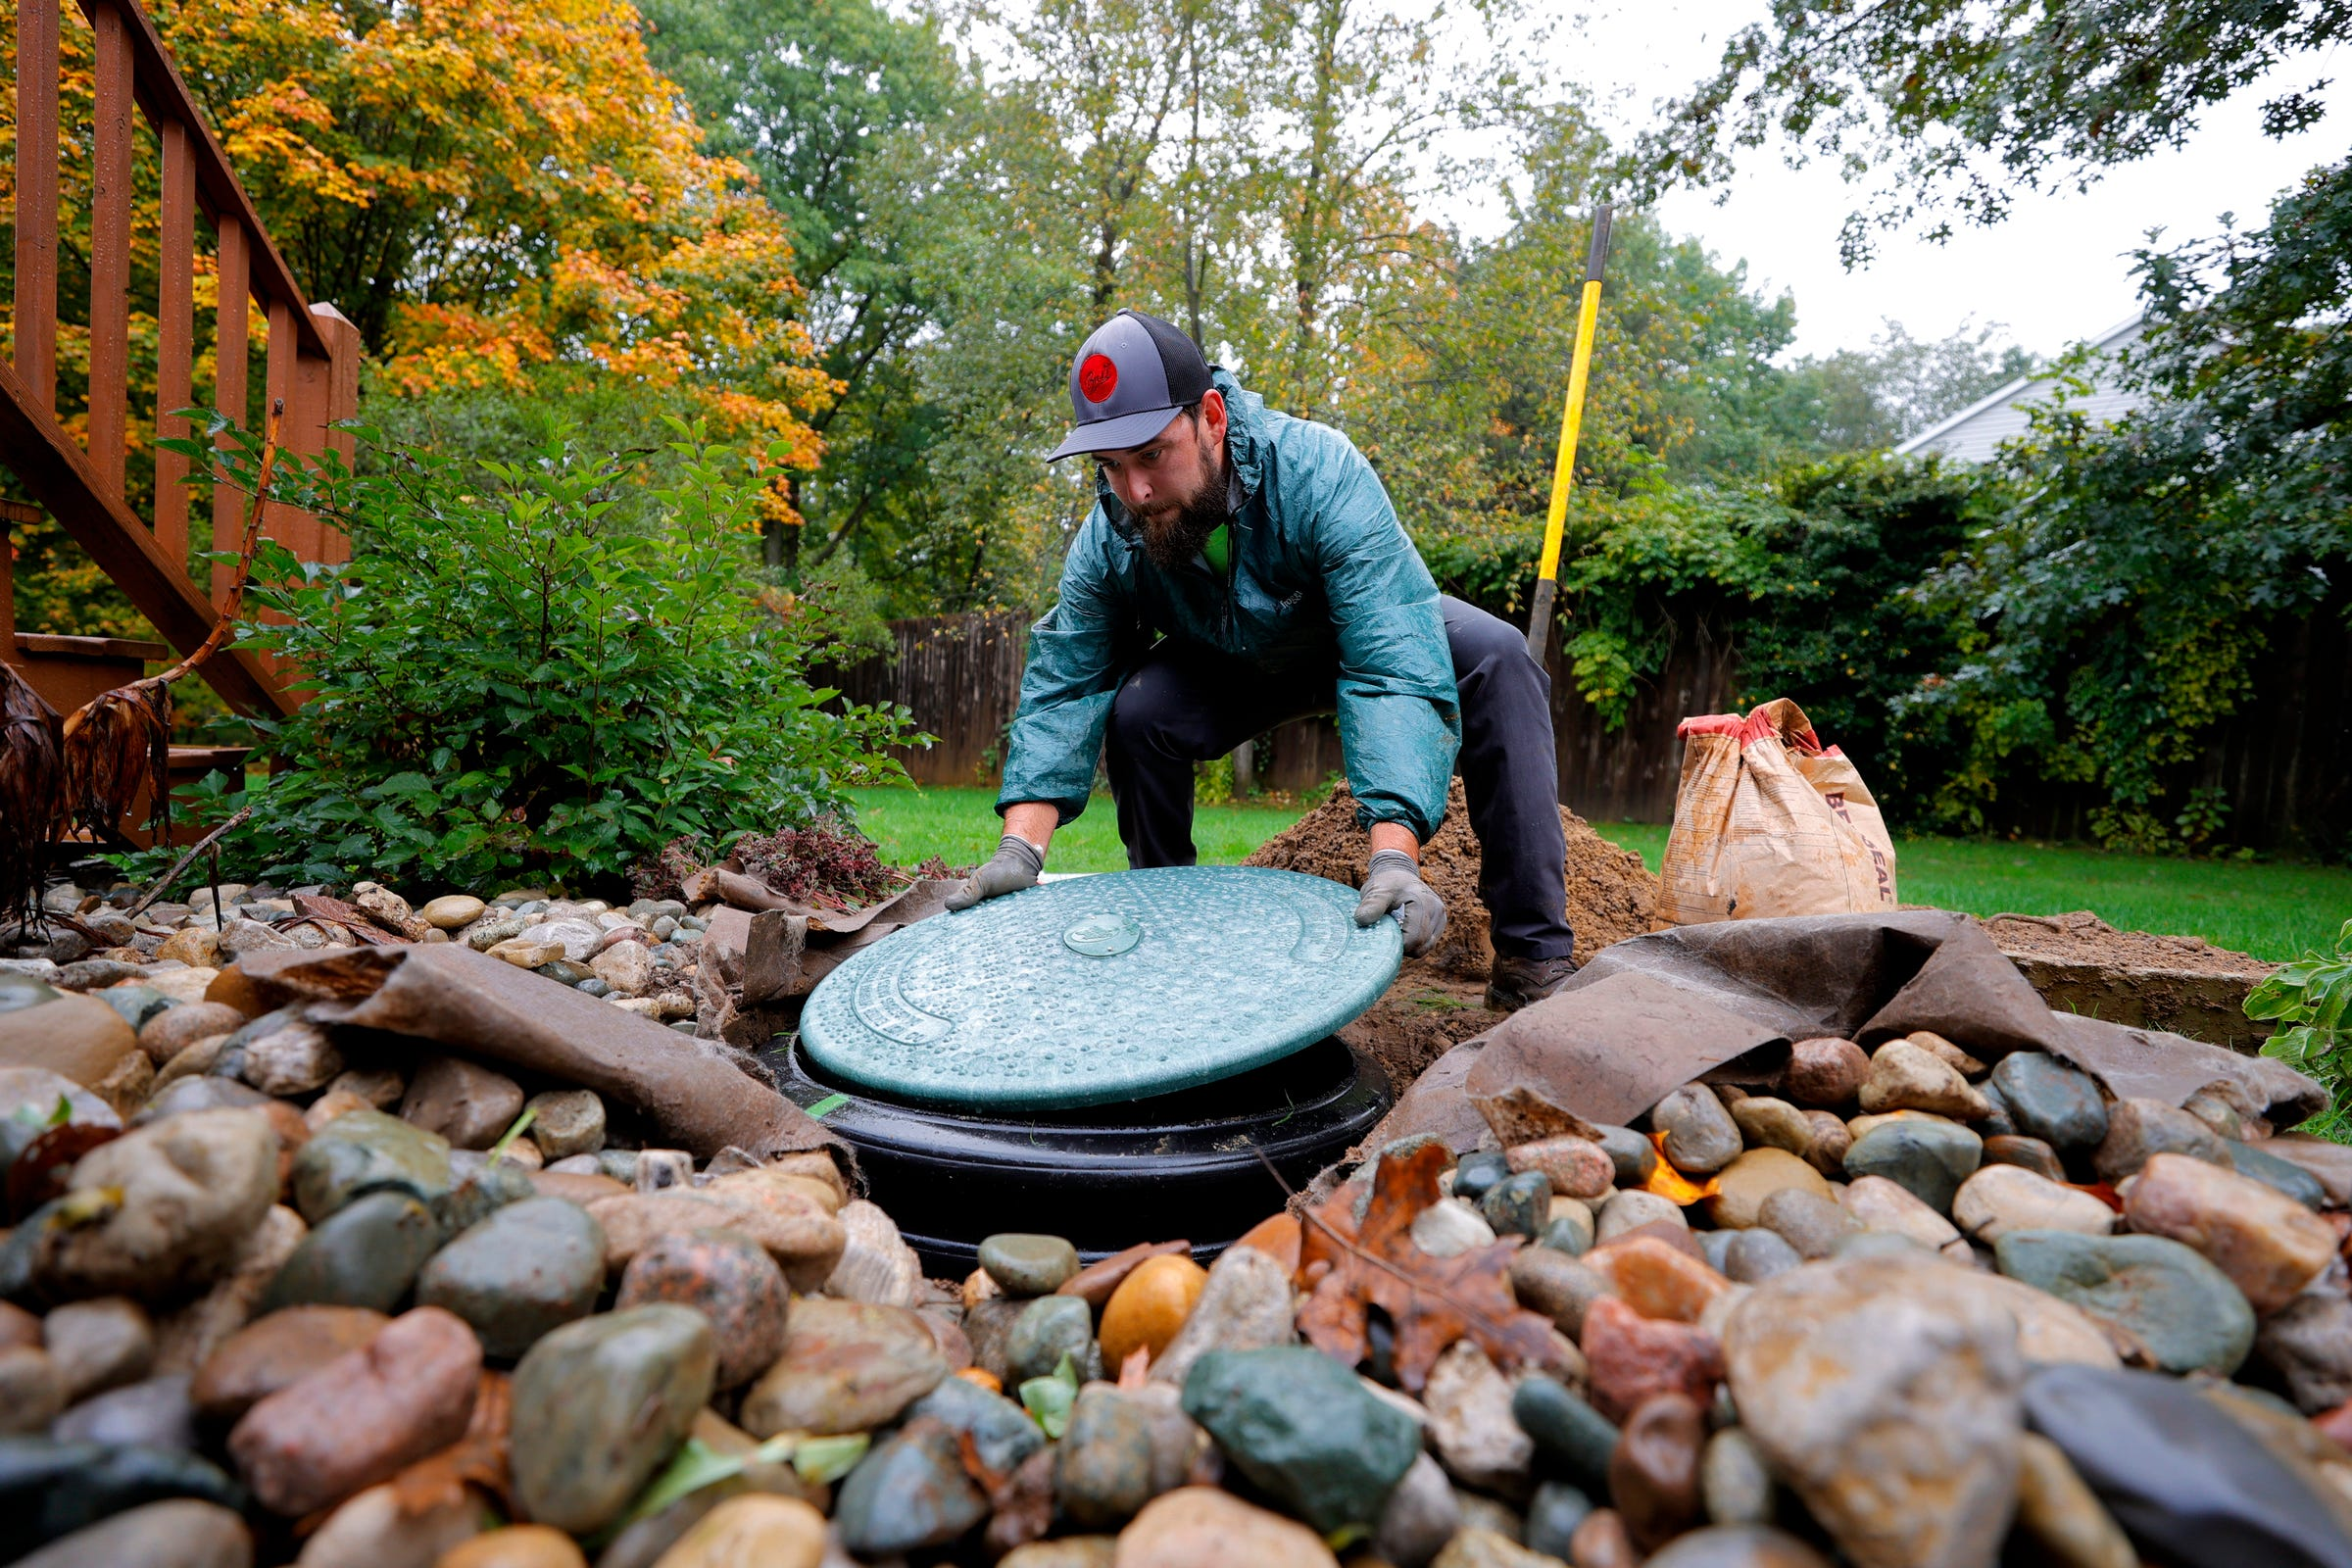 Aging, failing septic systems polluting Michigan waters, harming public health